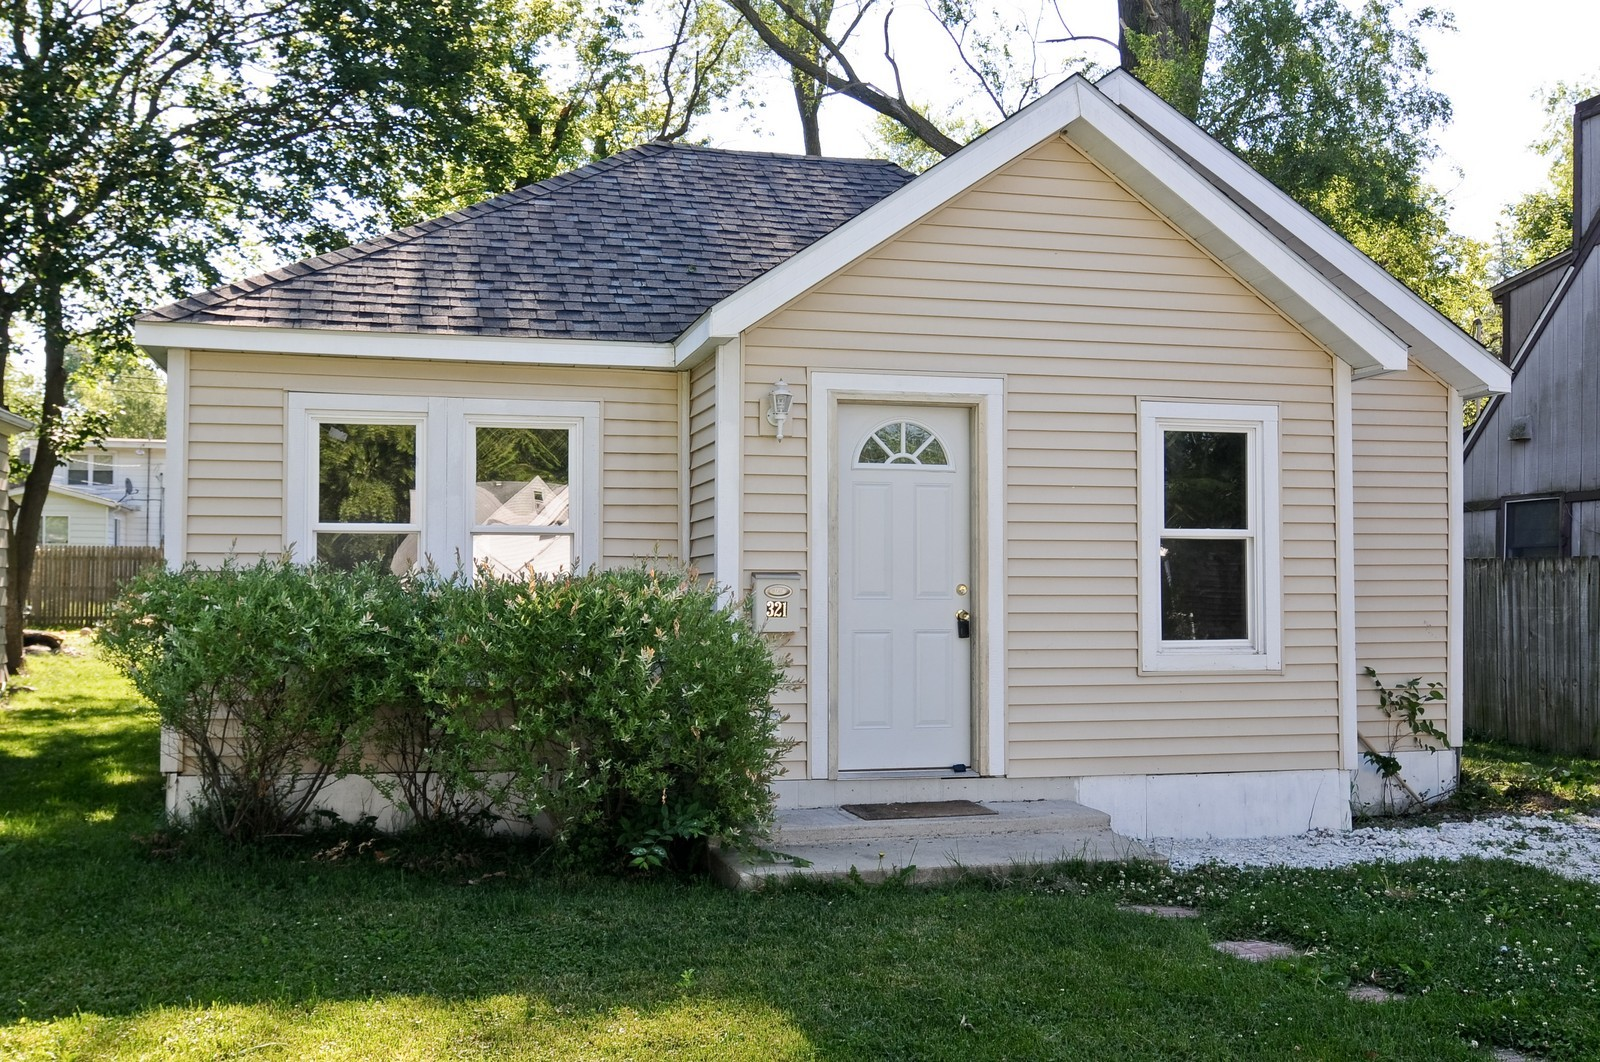 Real Estate Photography - 321 N Bellevue, Round Lake Park, IL, 60073 - Front View